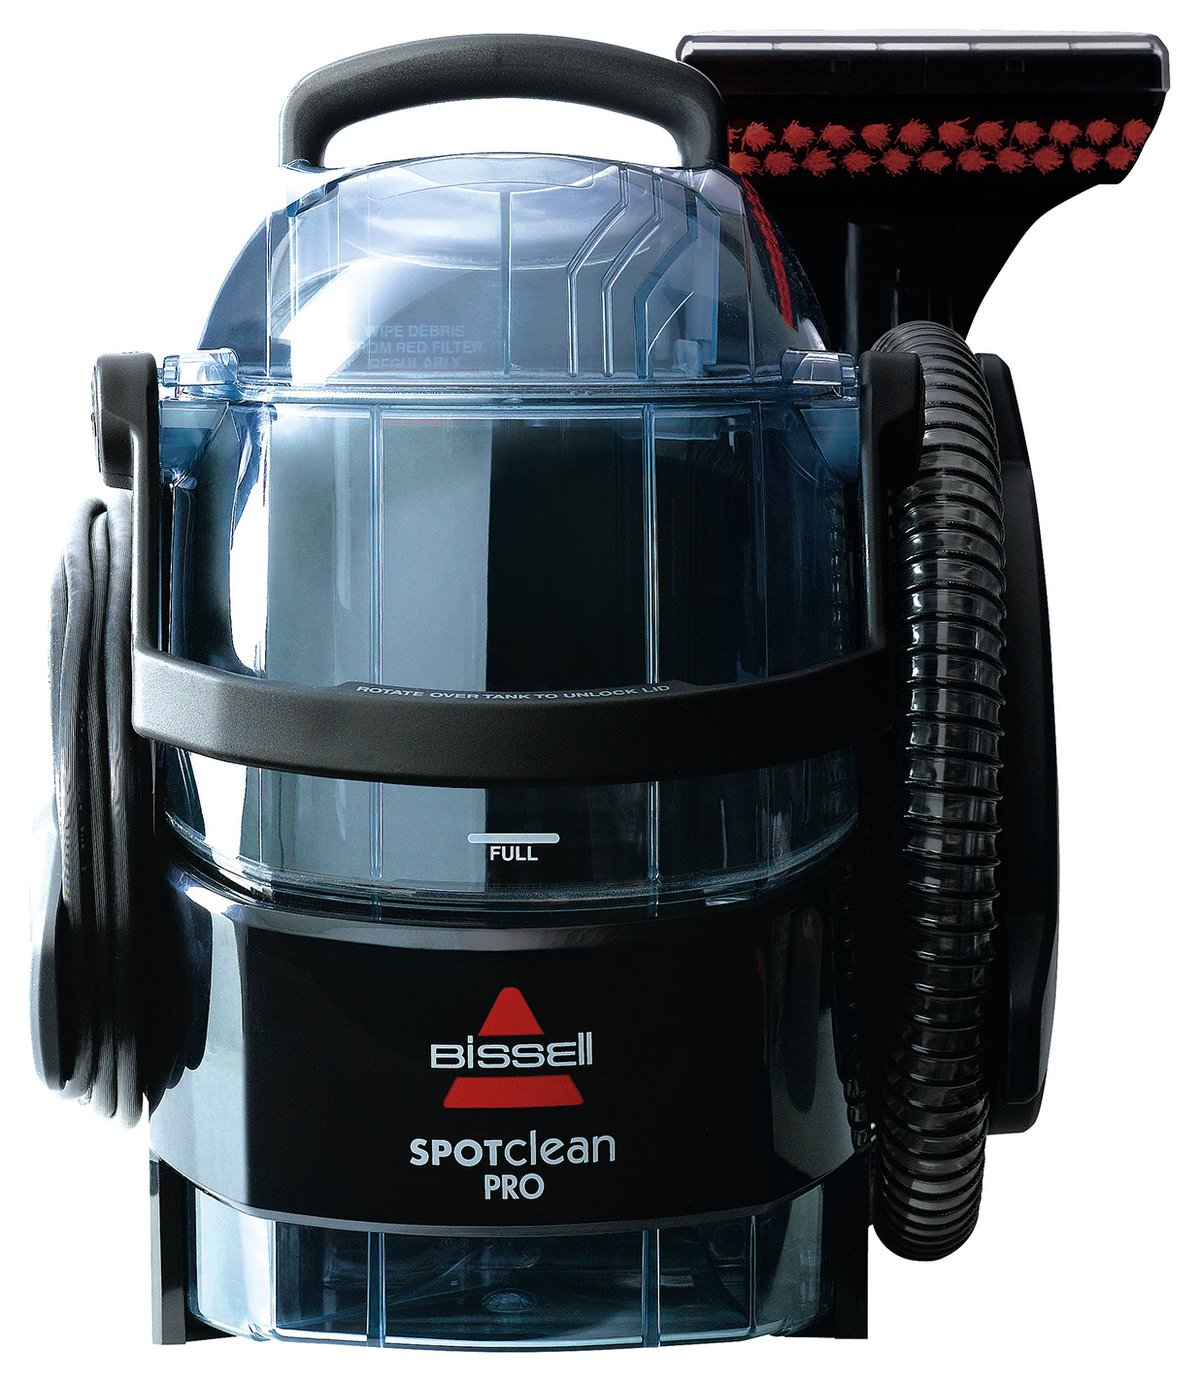 Bissell 1558E SpotClean Pro Carpet Cleaner